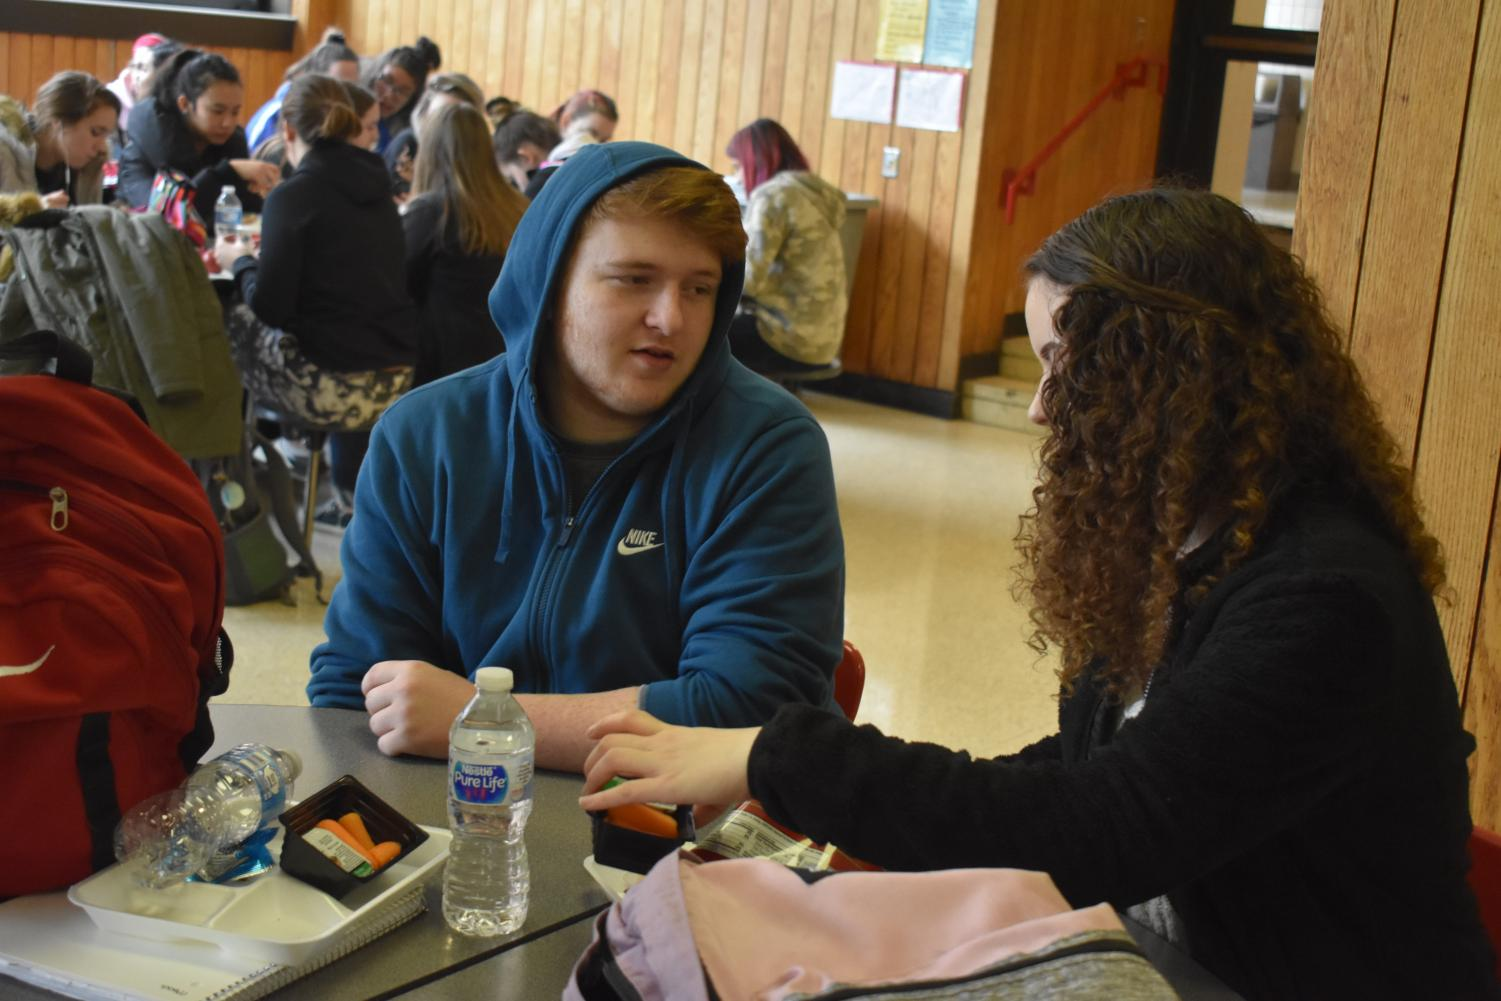 On Feb. 19, seniors Nathan Galderisi and Ashley Kanchat engage in a conversation during their lunch.